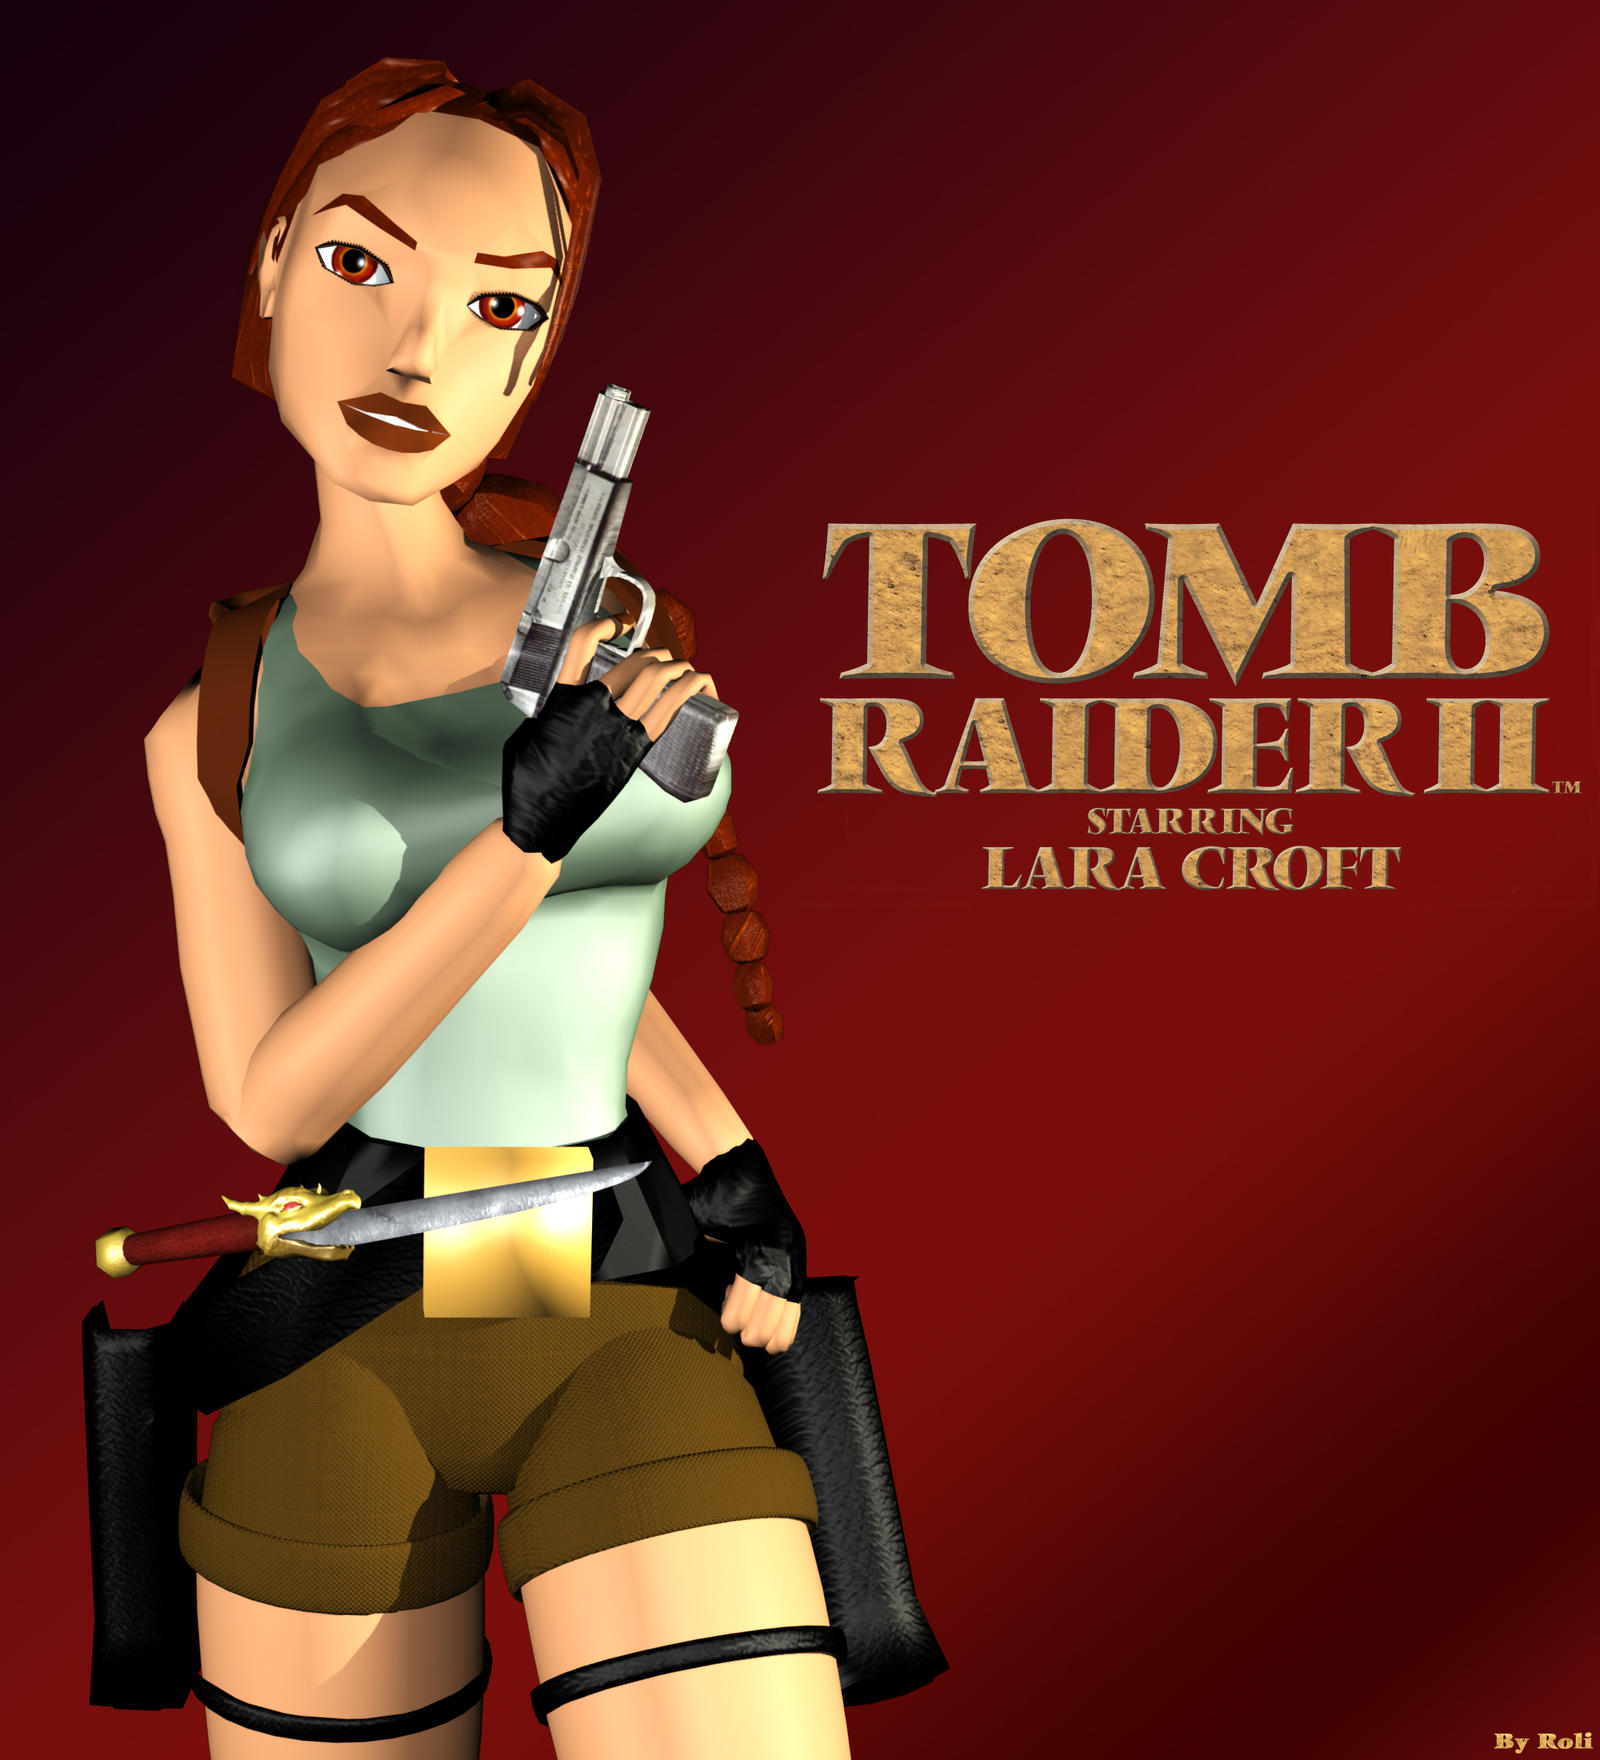 Classic Tomb Raider Wallpaper: Tomb Raider 2 Cover (Re-rendered) By Roli29 On DeviantArt